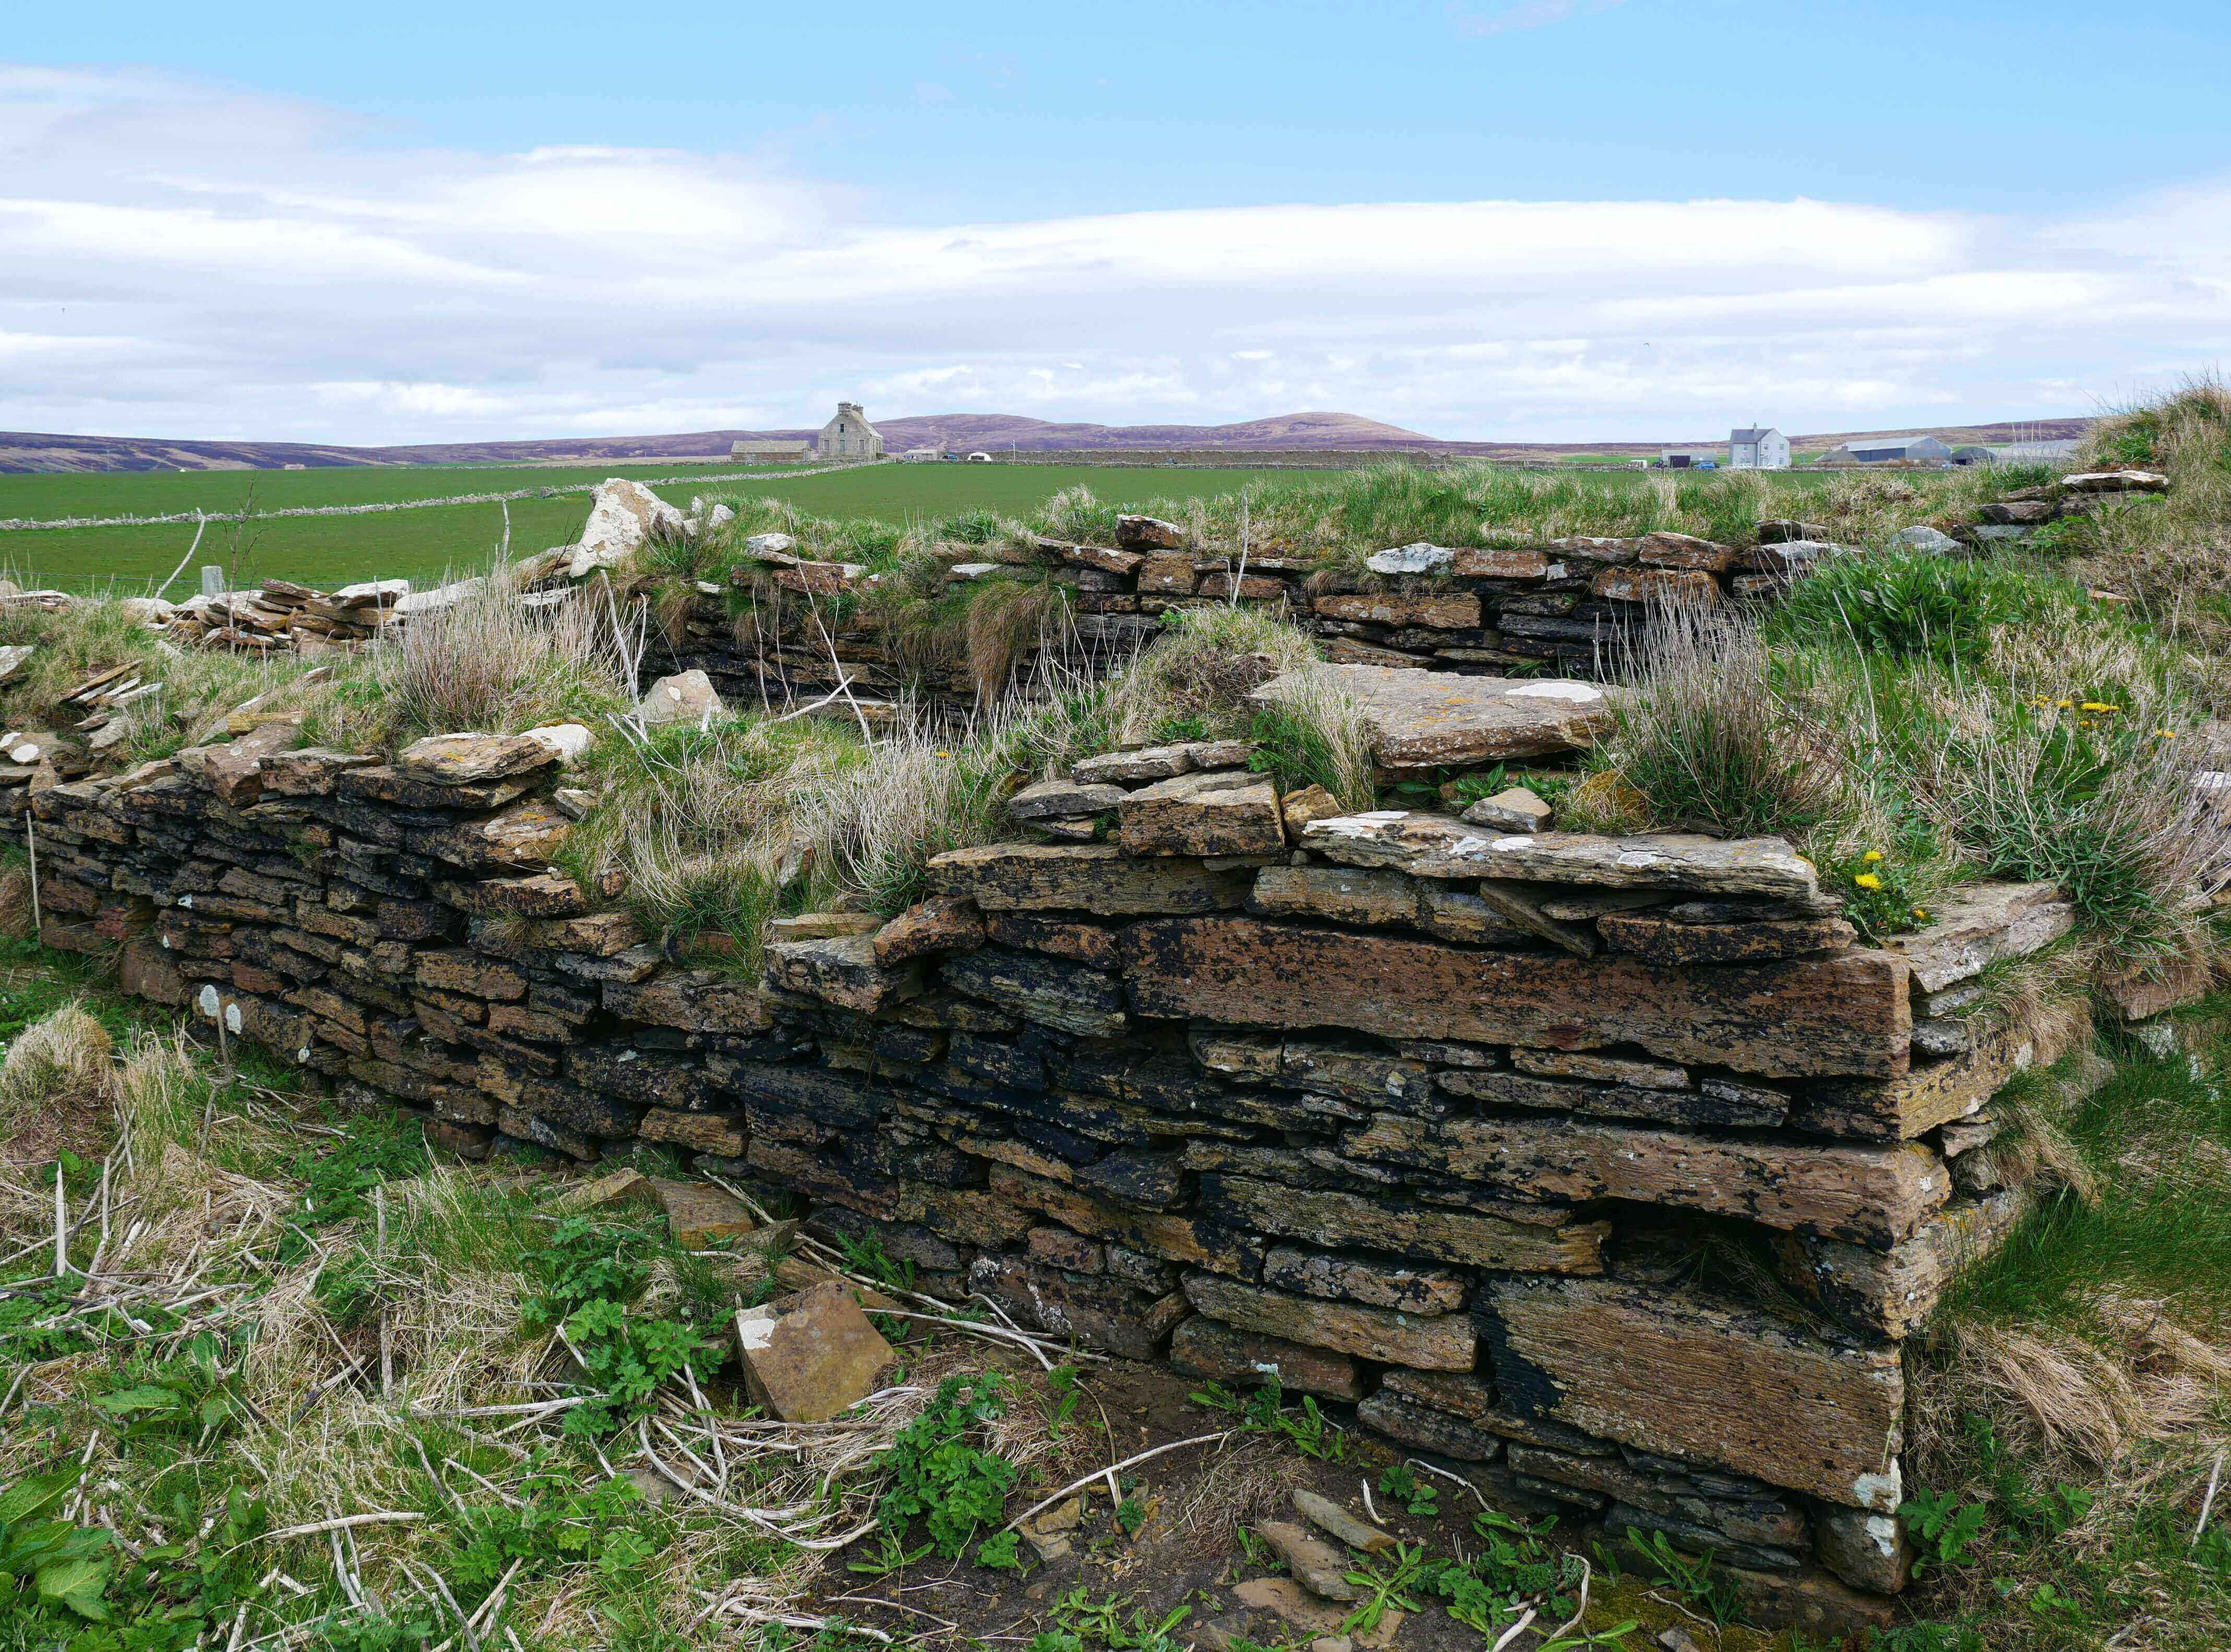 Ruinous sail store at the shore near the Hall of Clestrain, Orkney Islands, Scotland.